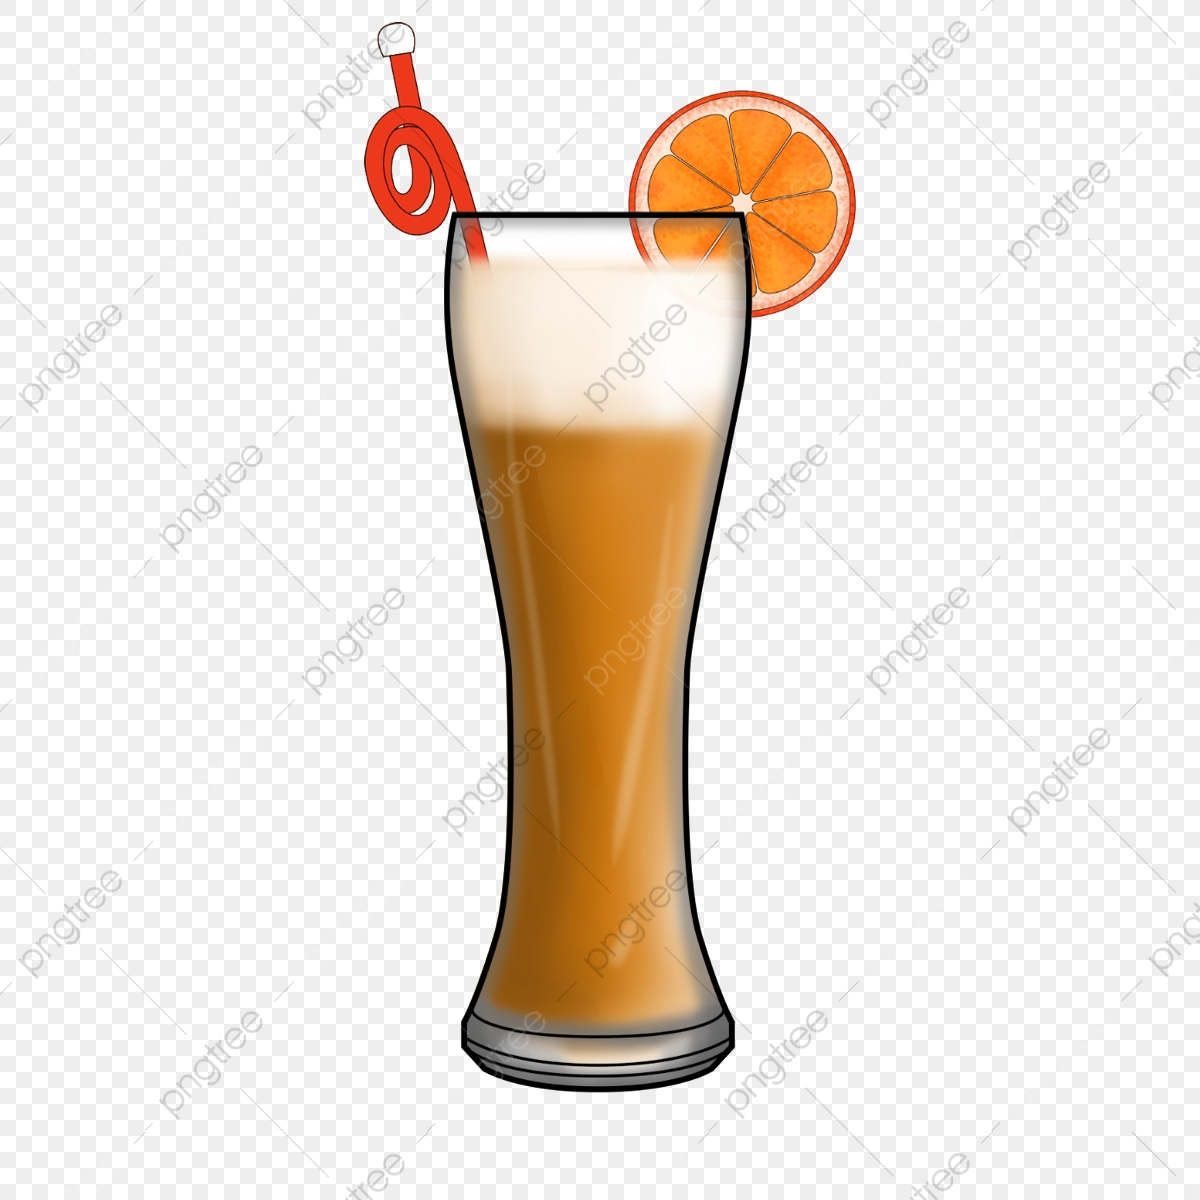 jus gambar png file vektor dan psd unduh gratis di pngtree https id pngtree com freepng refreshing summer juice bartending cute cartoon illustration coffee 5486569 html